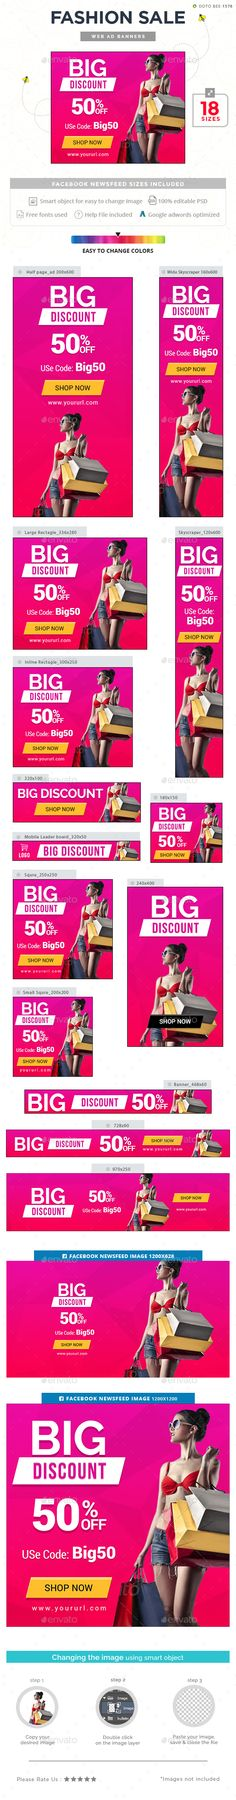 Fashion Sale Banners Template PSD. Download here: https://graphicriver.net/item/fashion-sale-banners/17228656?ref=ksioks